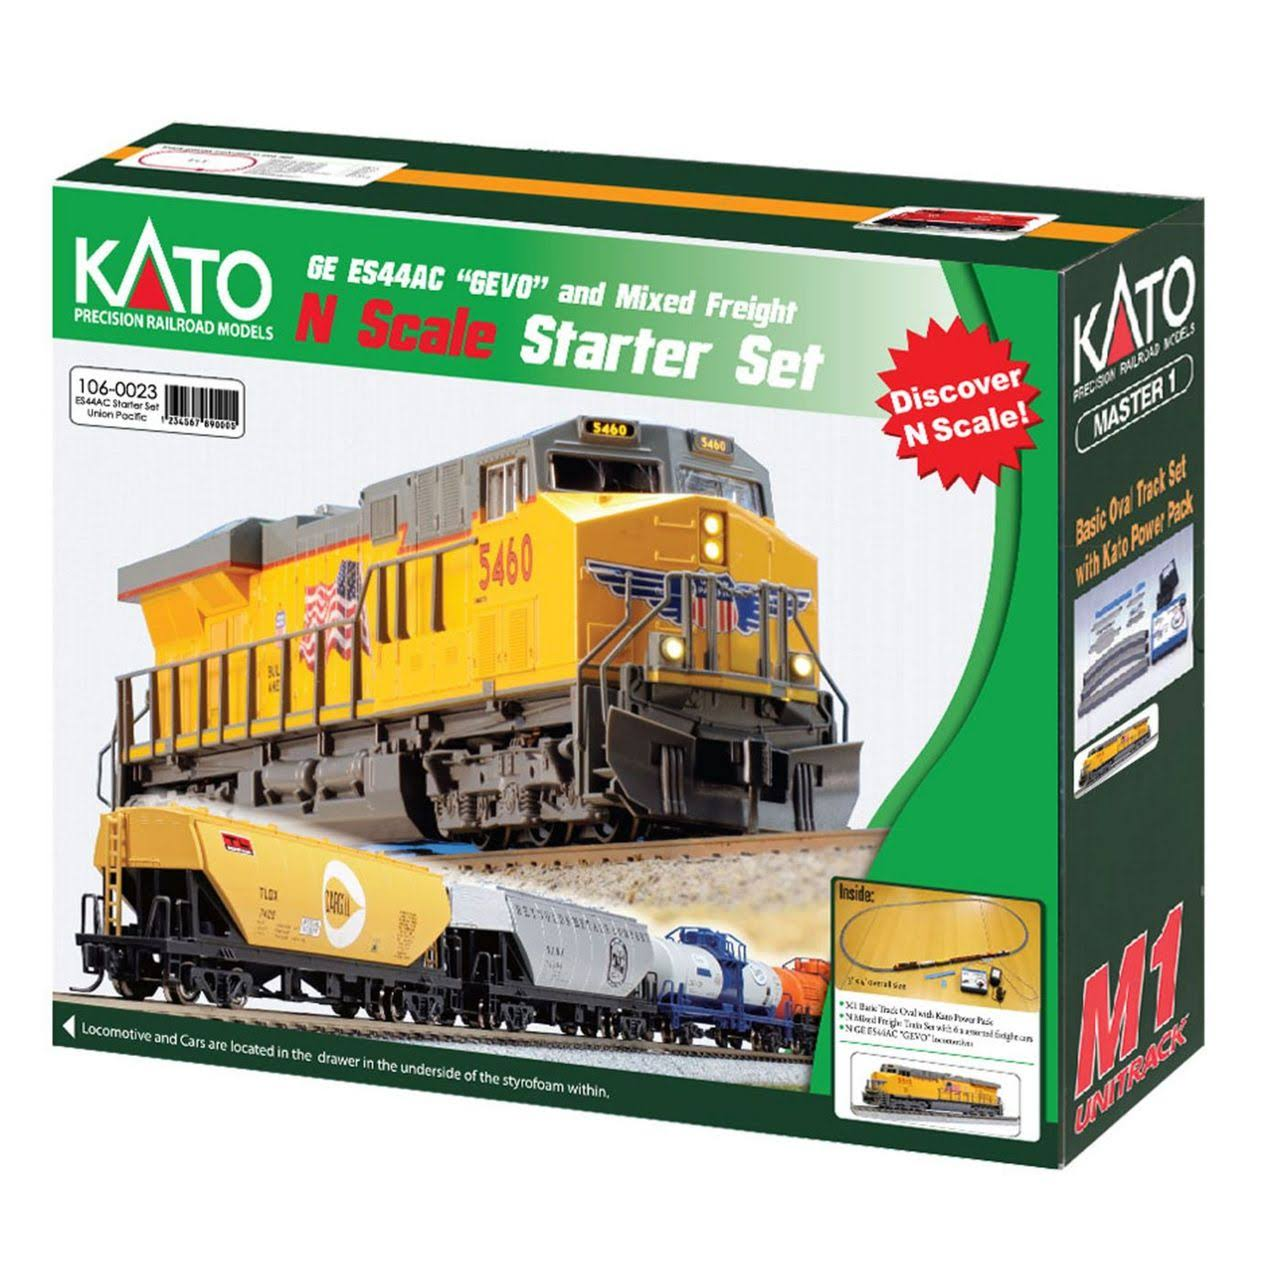 Kato Ge Es44ac Gevo Mixed Freight Starter Set - Union Pacific Loco, 6 Cars